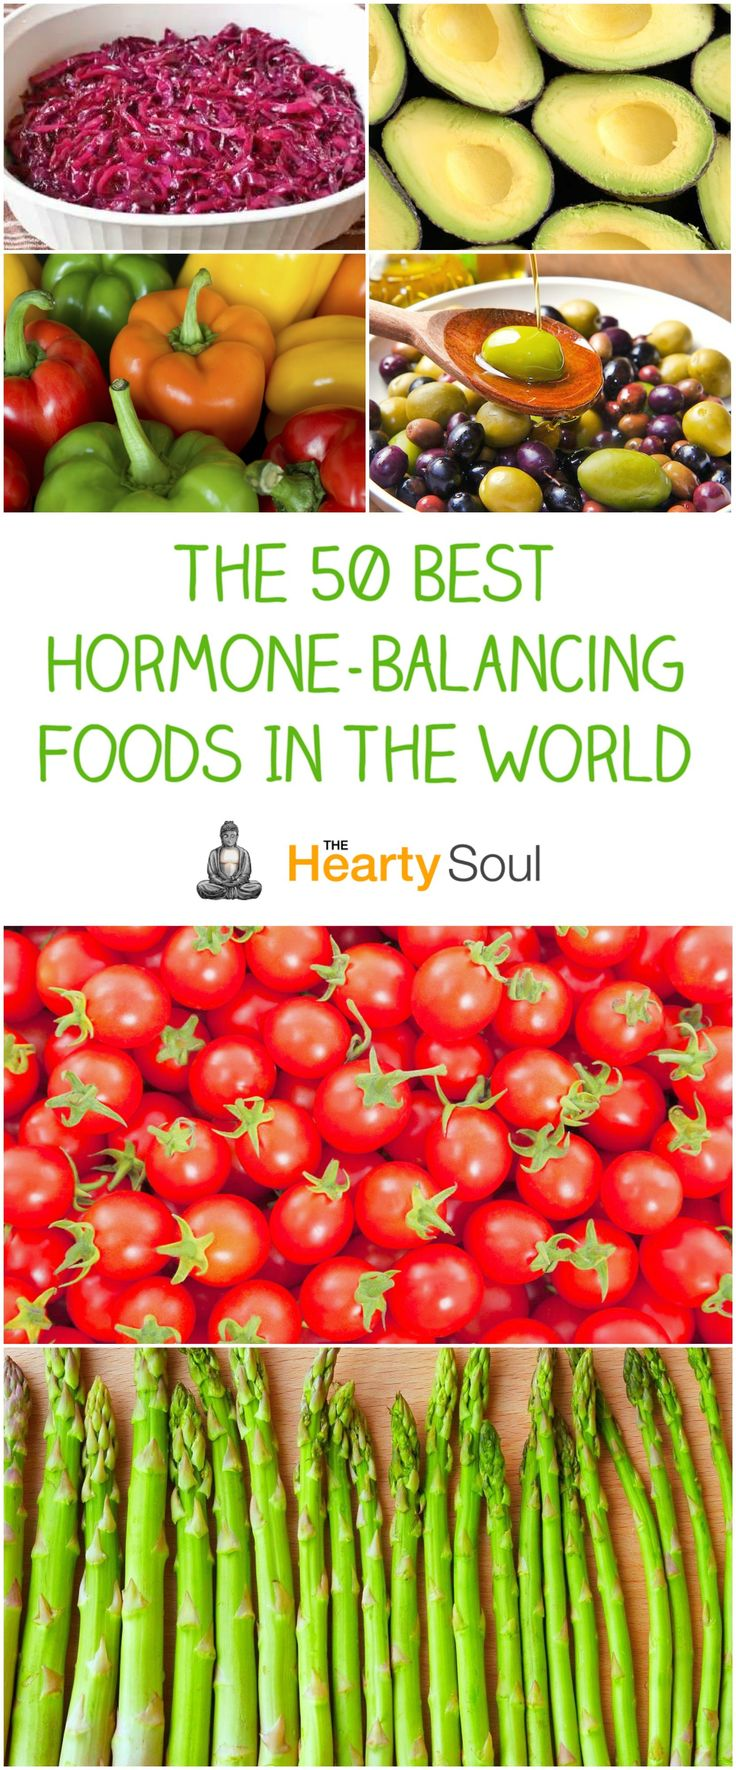 The 50 Best Hormone-Balancing Foods In The World